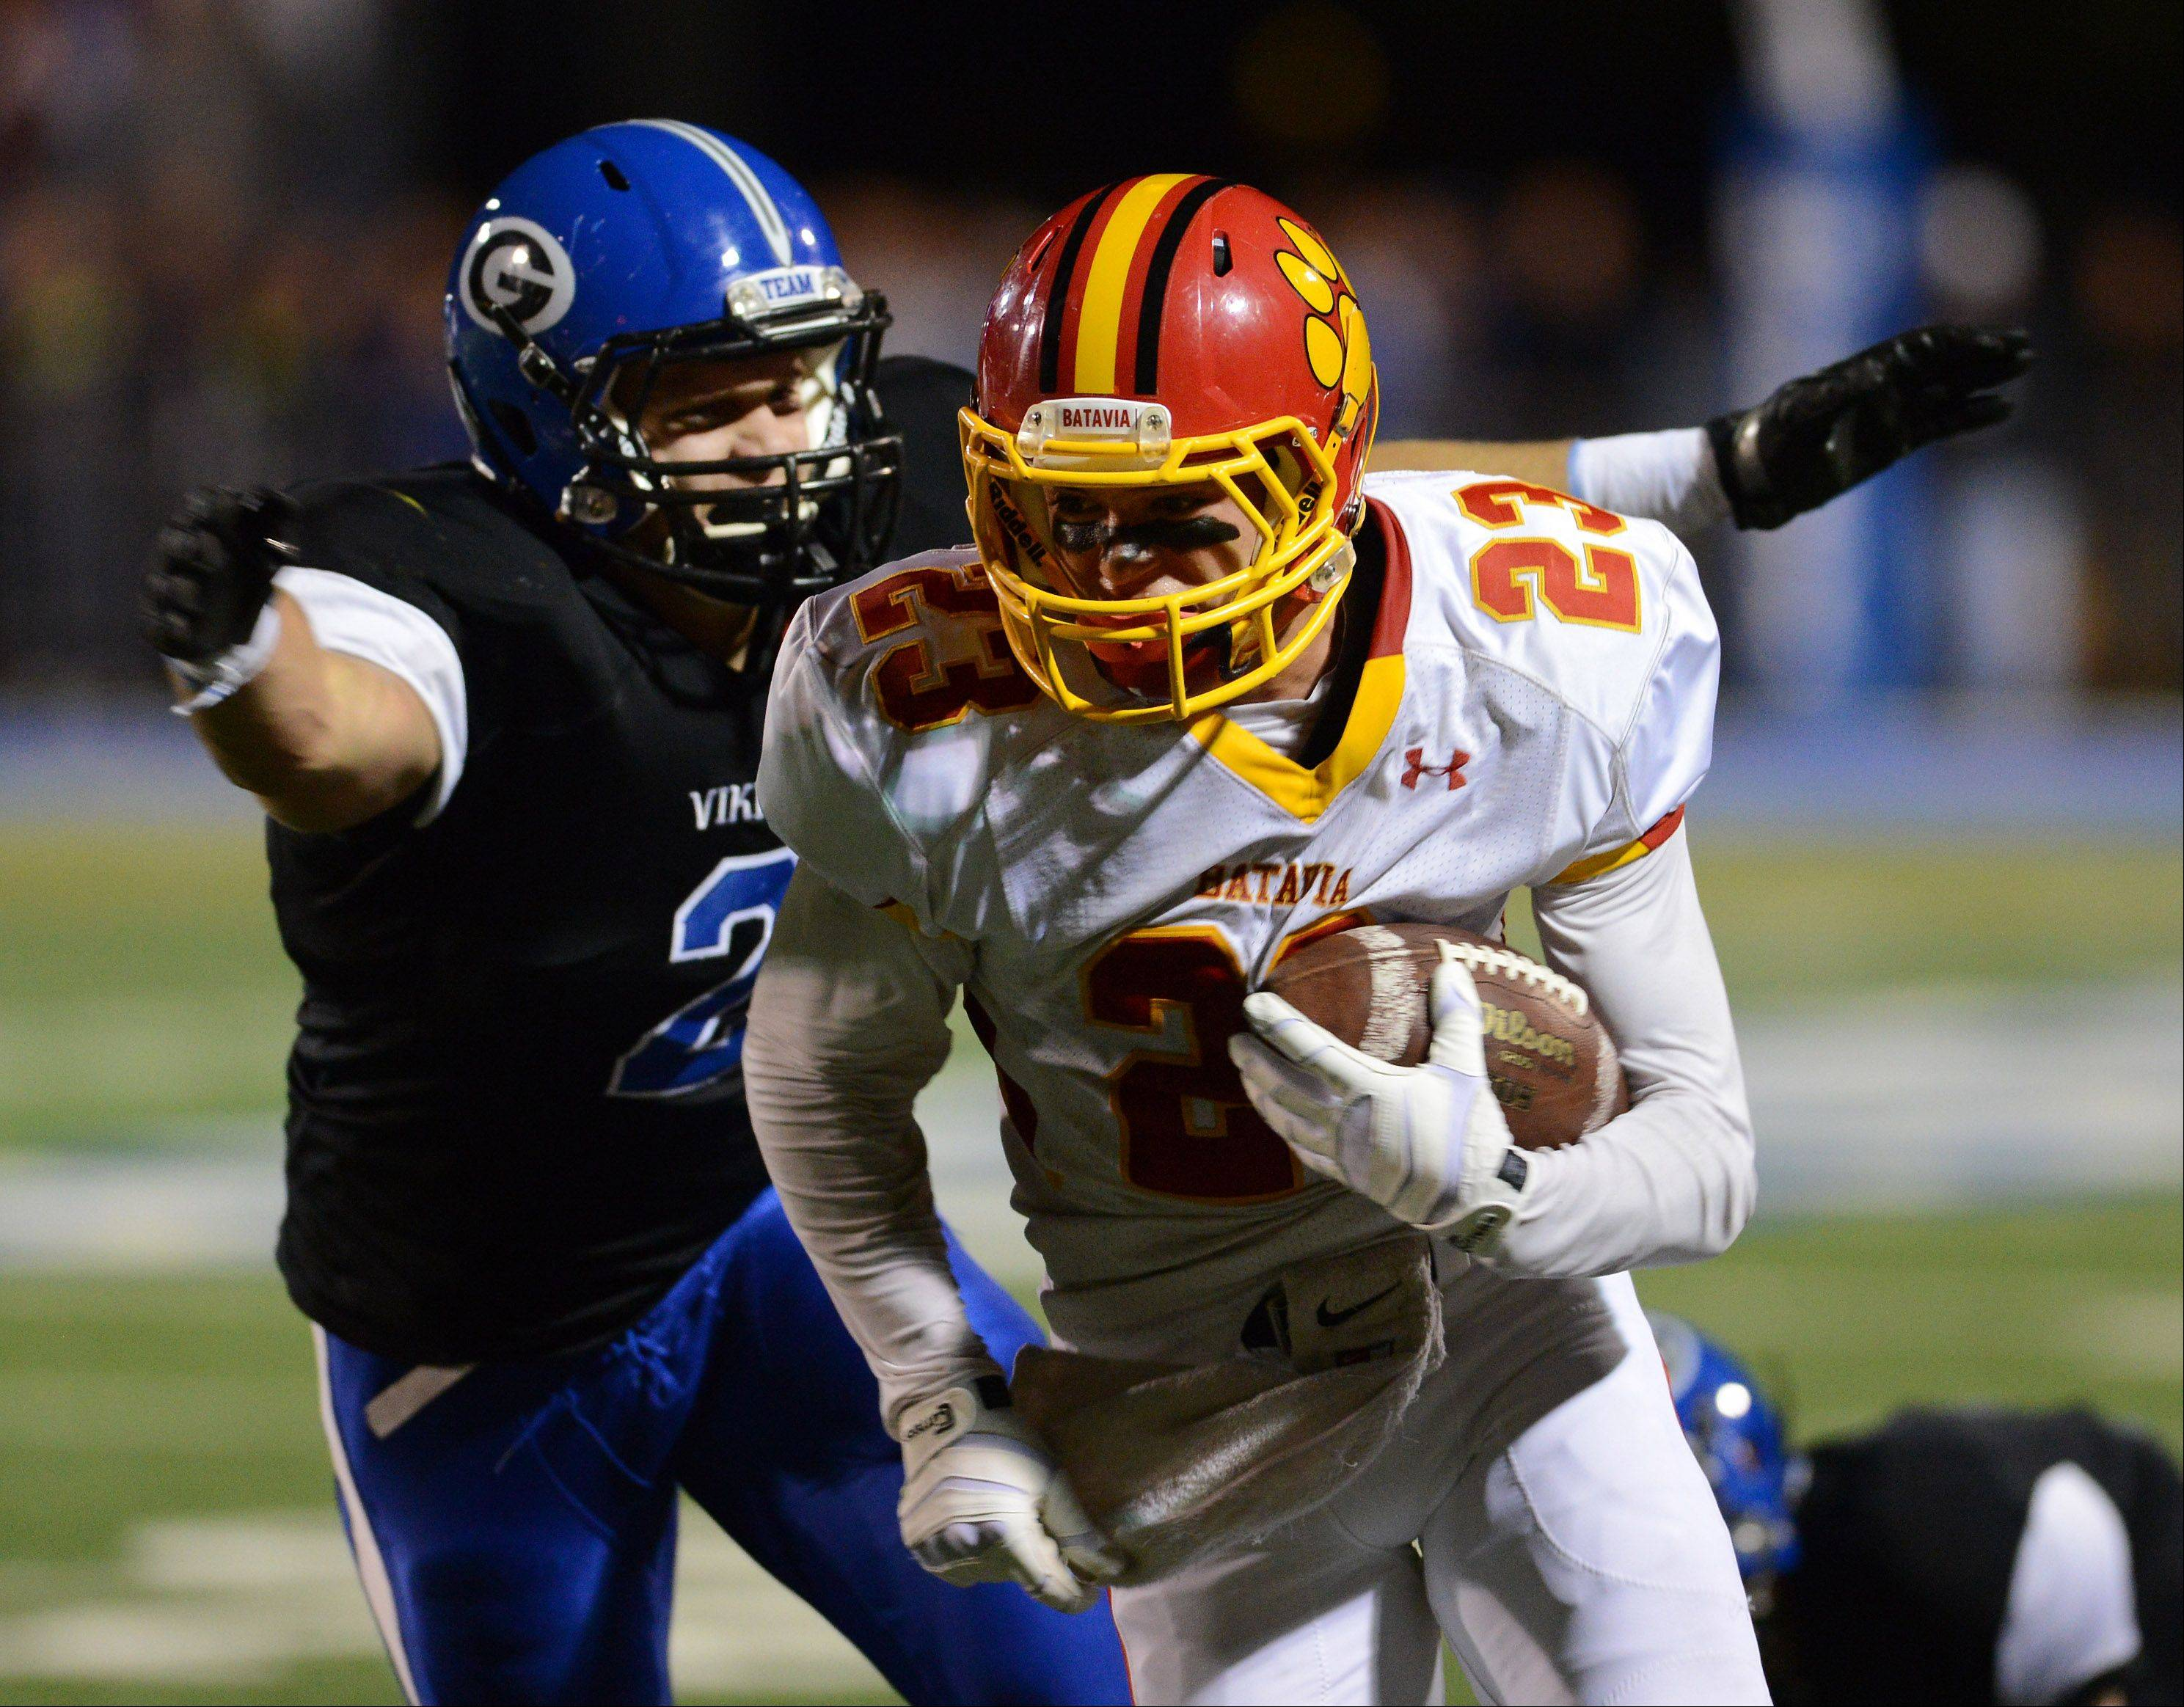 Images: Batavia vs. Geneva football